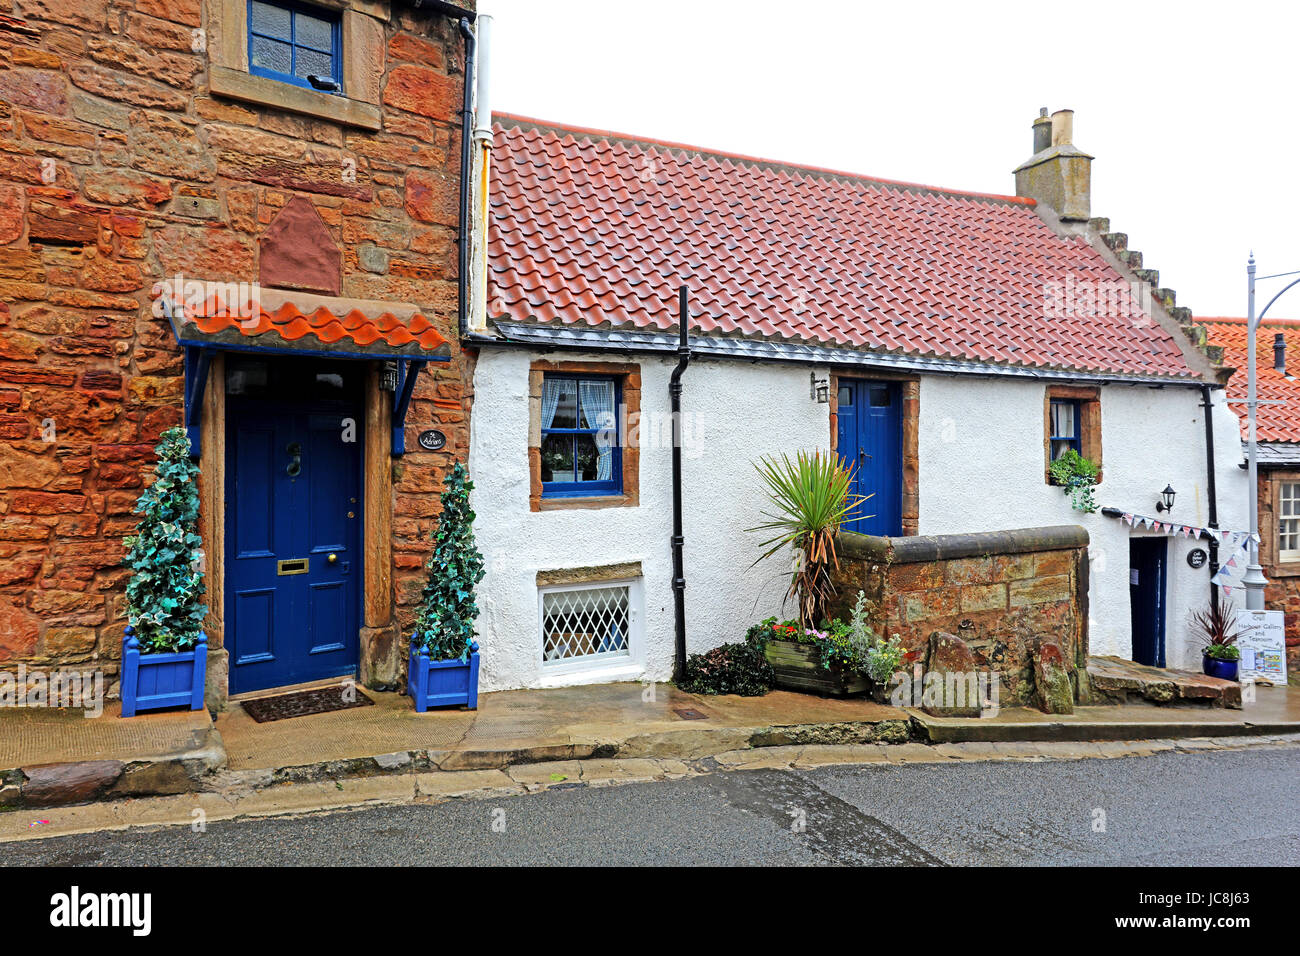 Row of cottages.Crail. Fife. Scotland - Stock Image